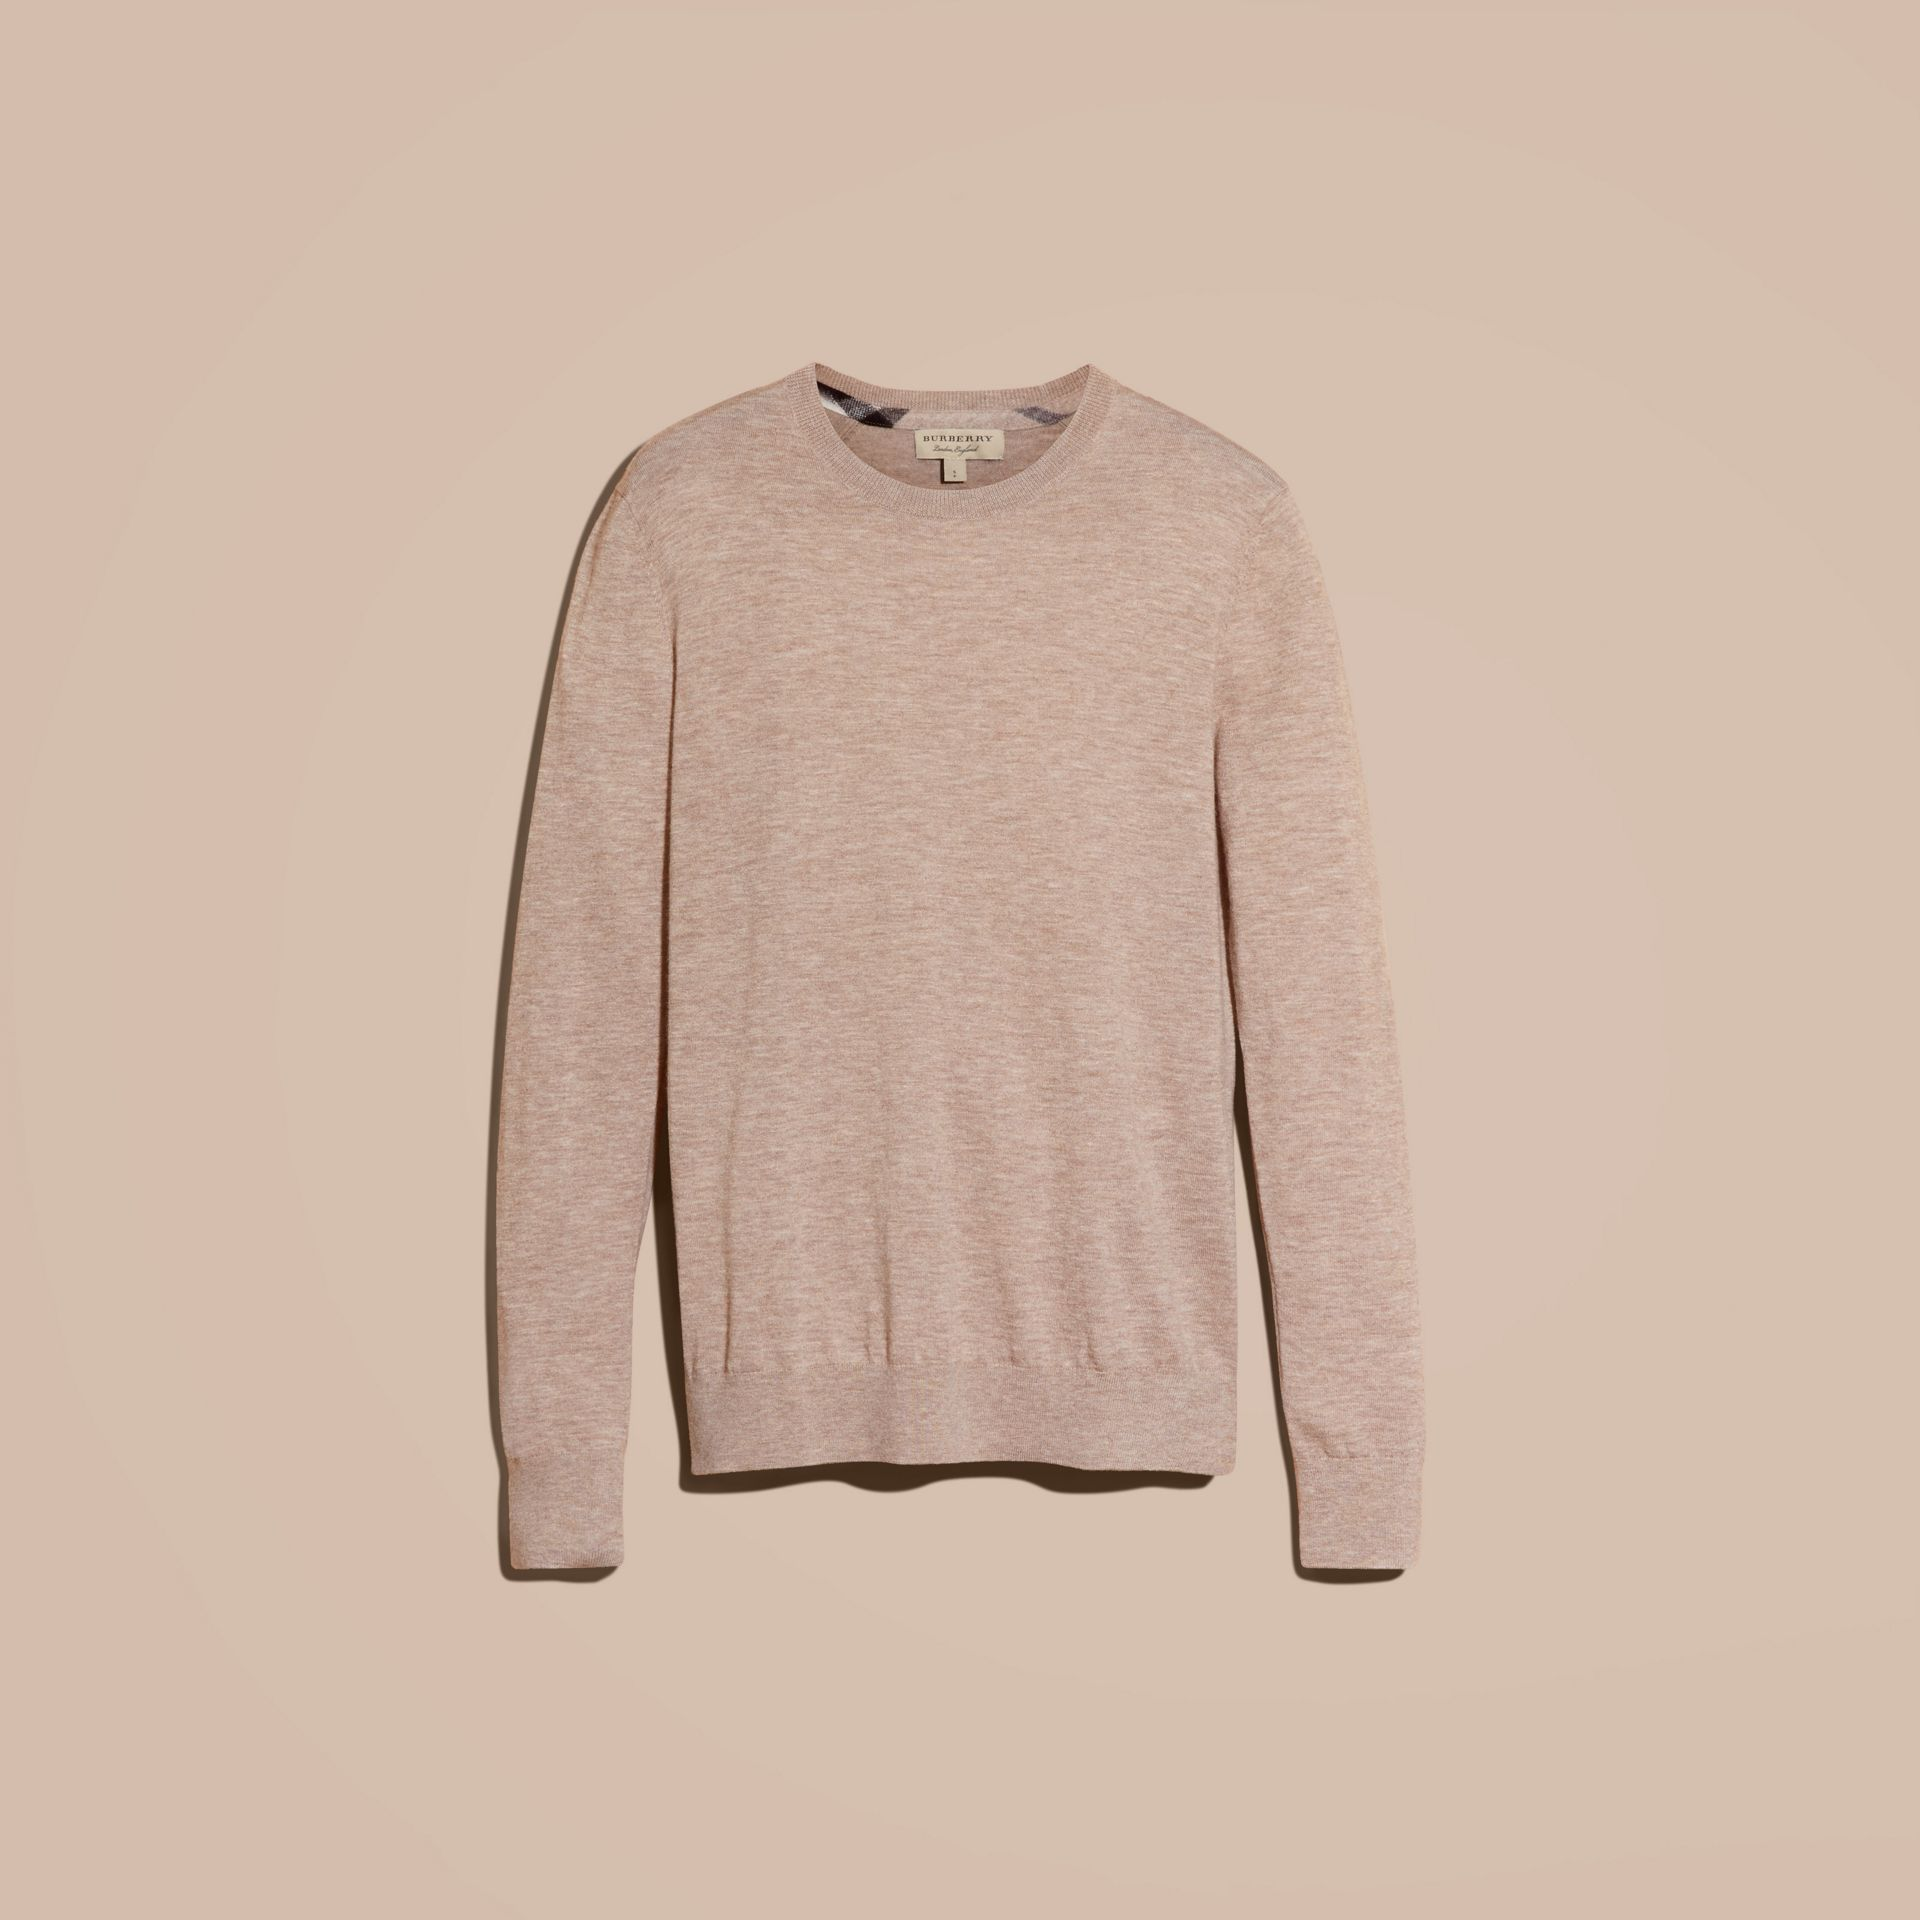 Camel melange Lightweight Crew Neck Cashmere Sweater with Check Trim Camel Melange - gallery image 4